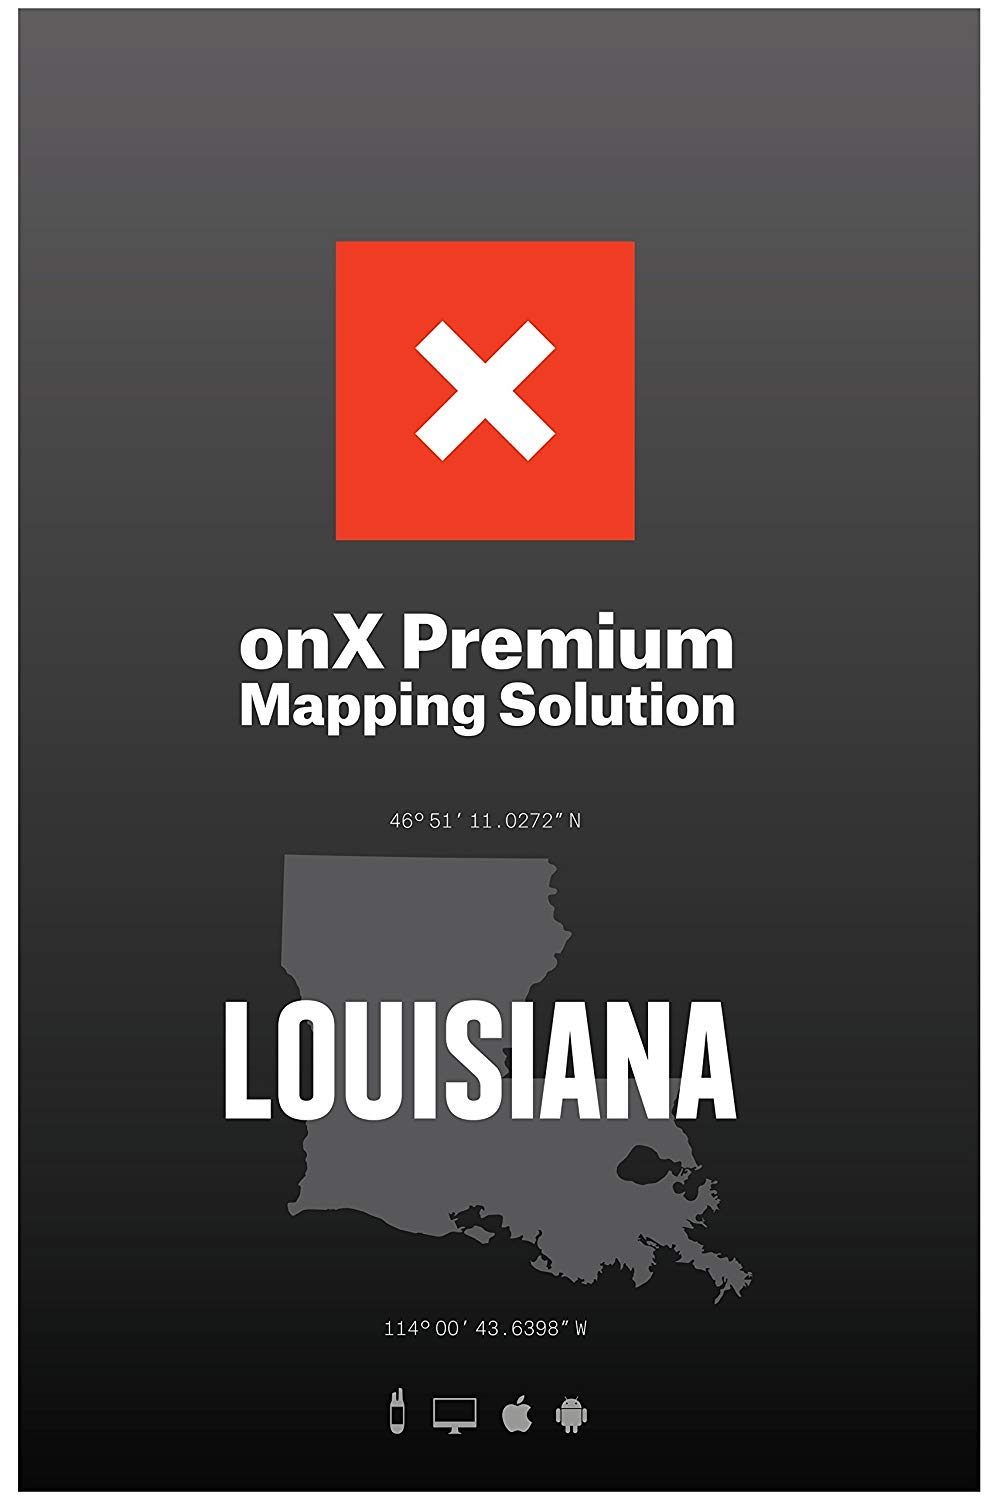 ONX Hunt: Louisiana Hunt Chip for Garmin GPS - Hunting Maps with Public & Private Land Ownership - Hunting Units - Includes Premium Membership Hunting App for iPhone, Android & Web by ONX